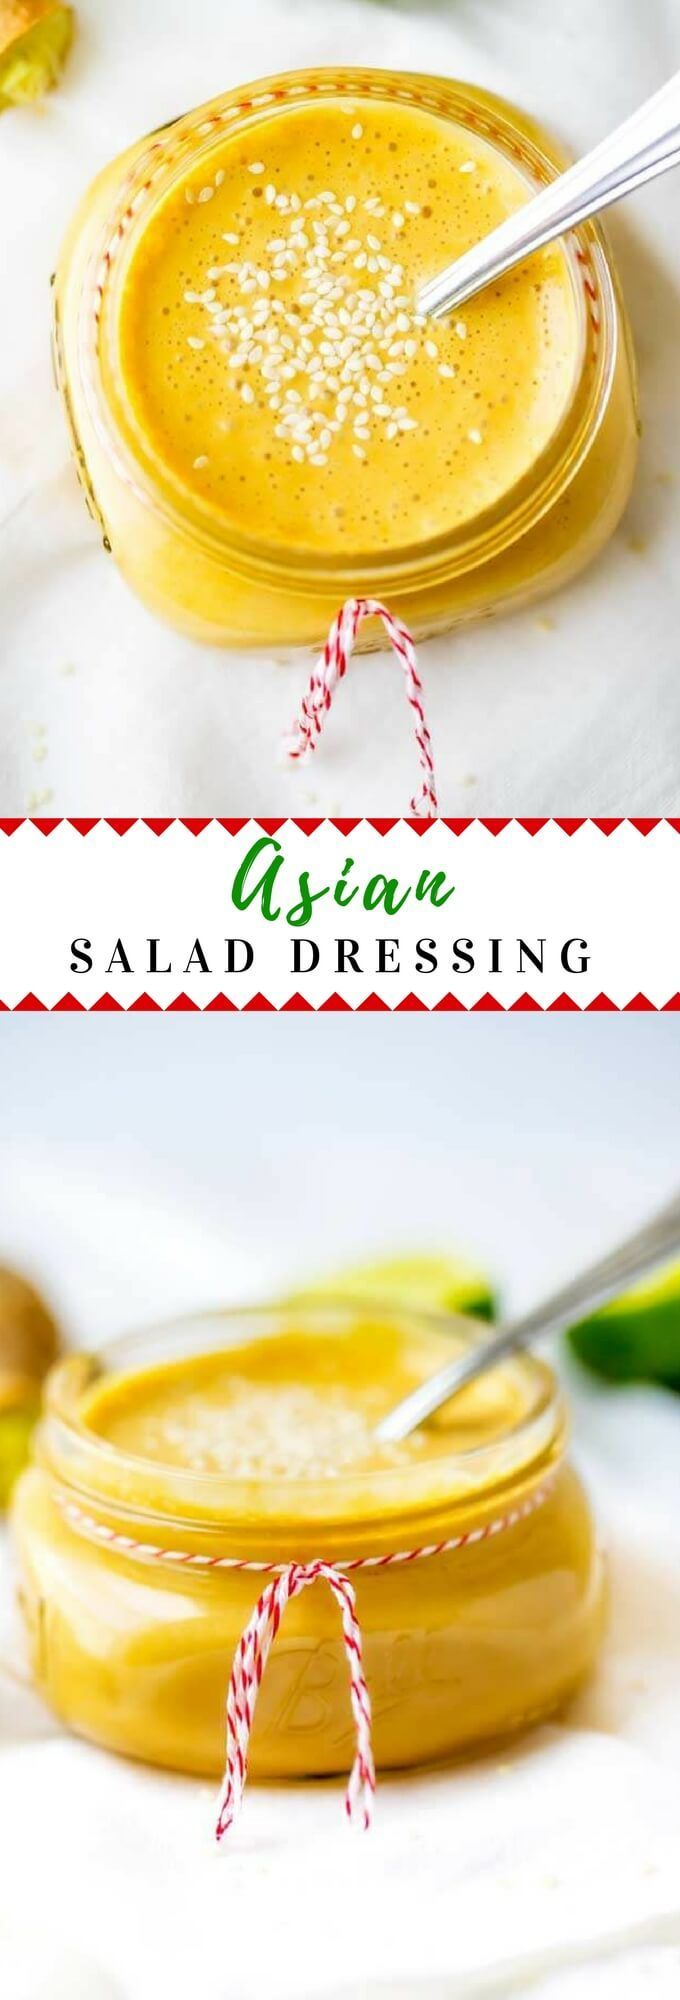 This homemade Asian Salad Dressing Recipe is easy to make and healthy!  With rice vinegar and ginger, this no sugar recipe is a simple dressing that packs a lot of flavor. via @wendypolisi #healthyfood  #saladdressing #healthy